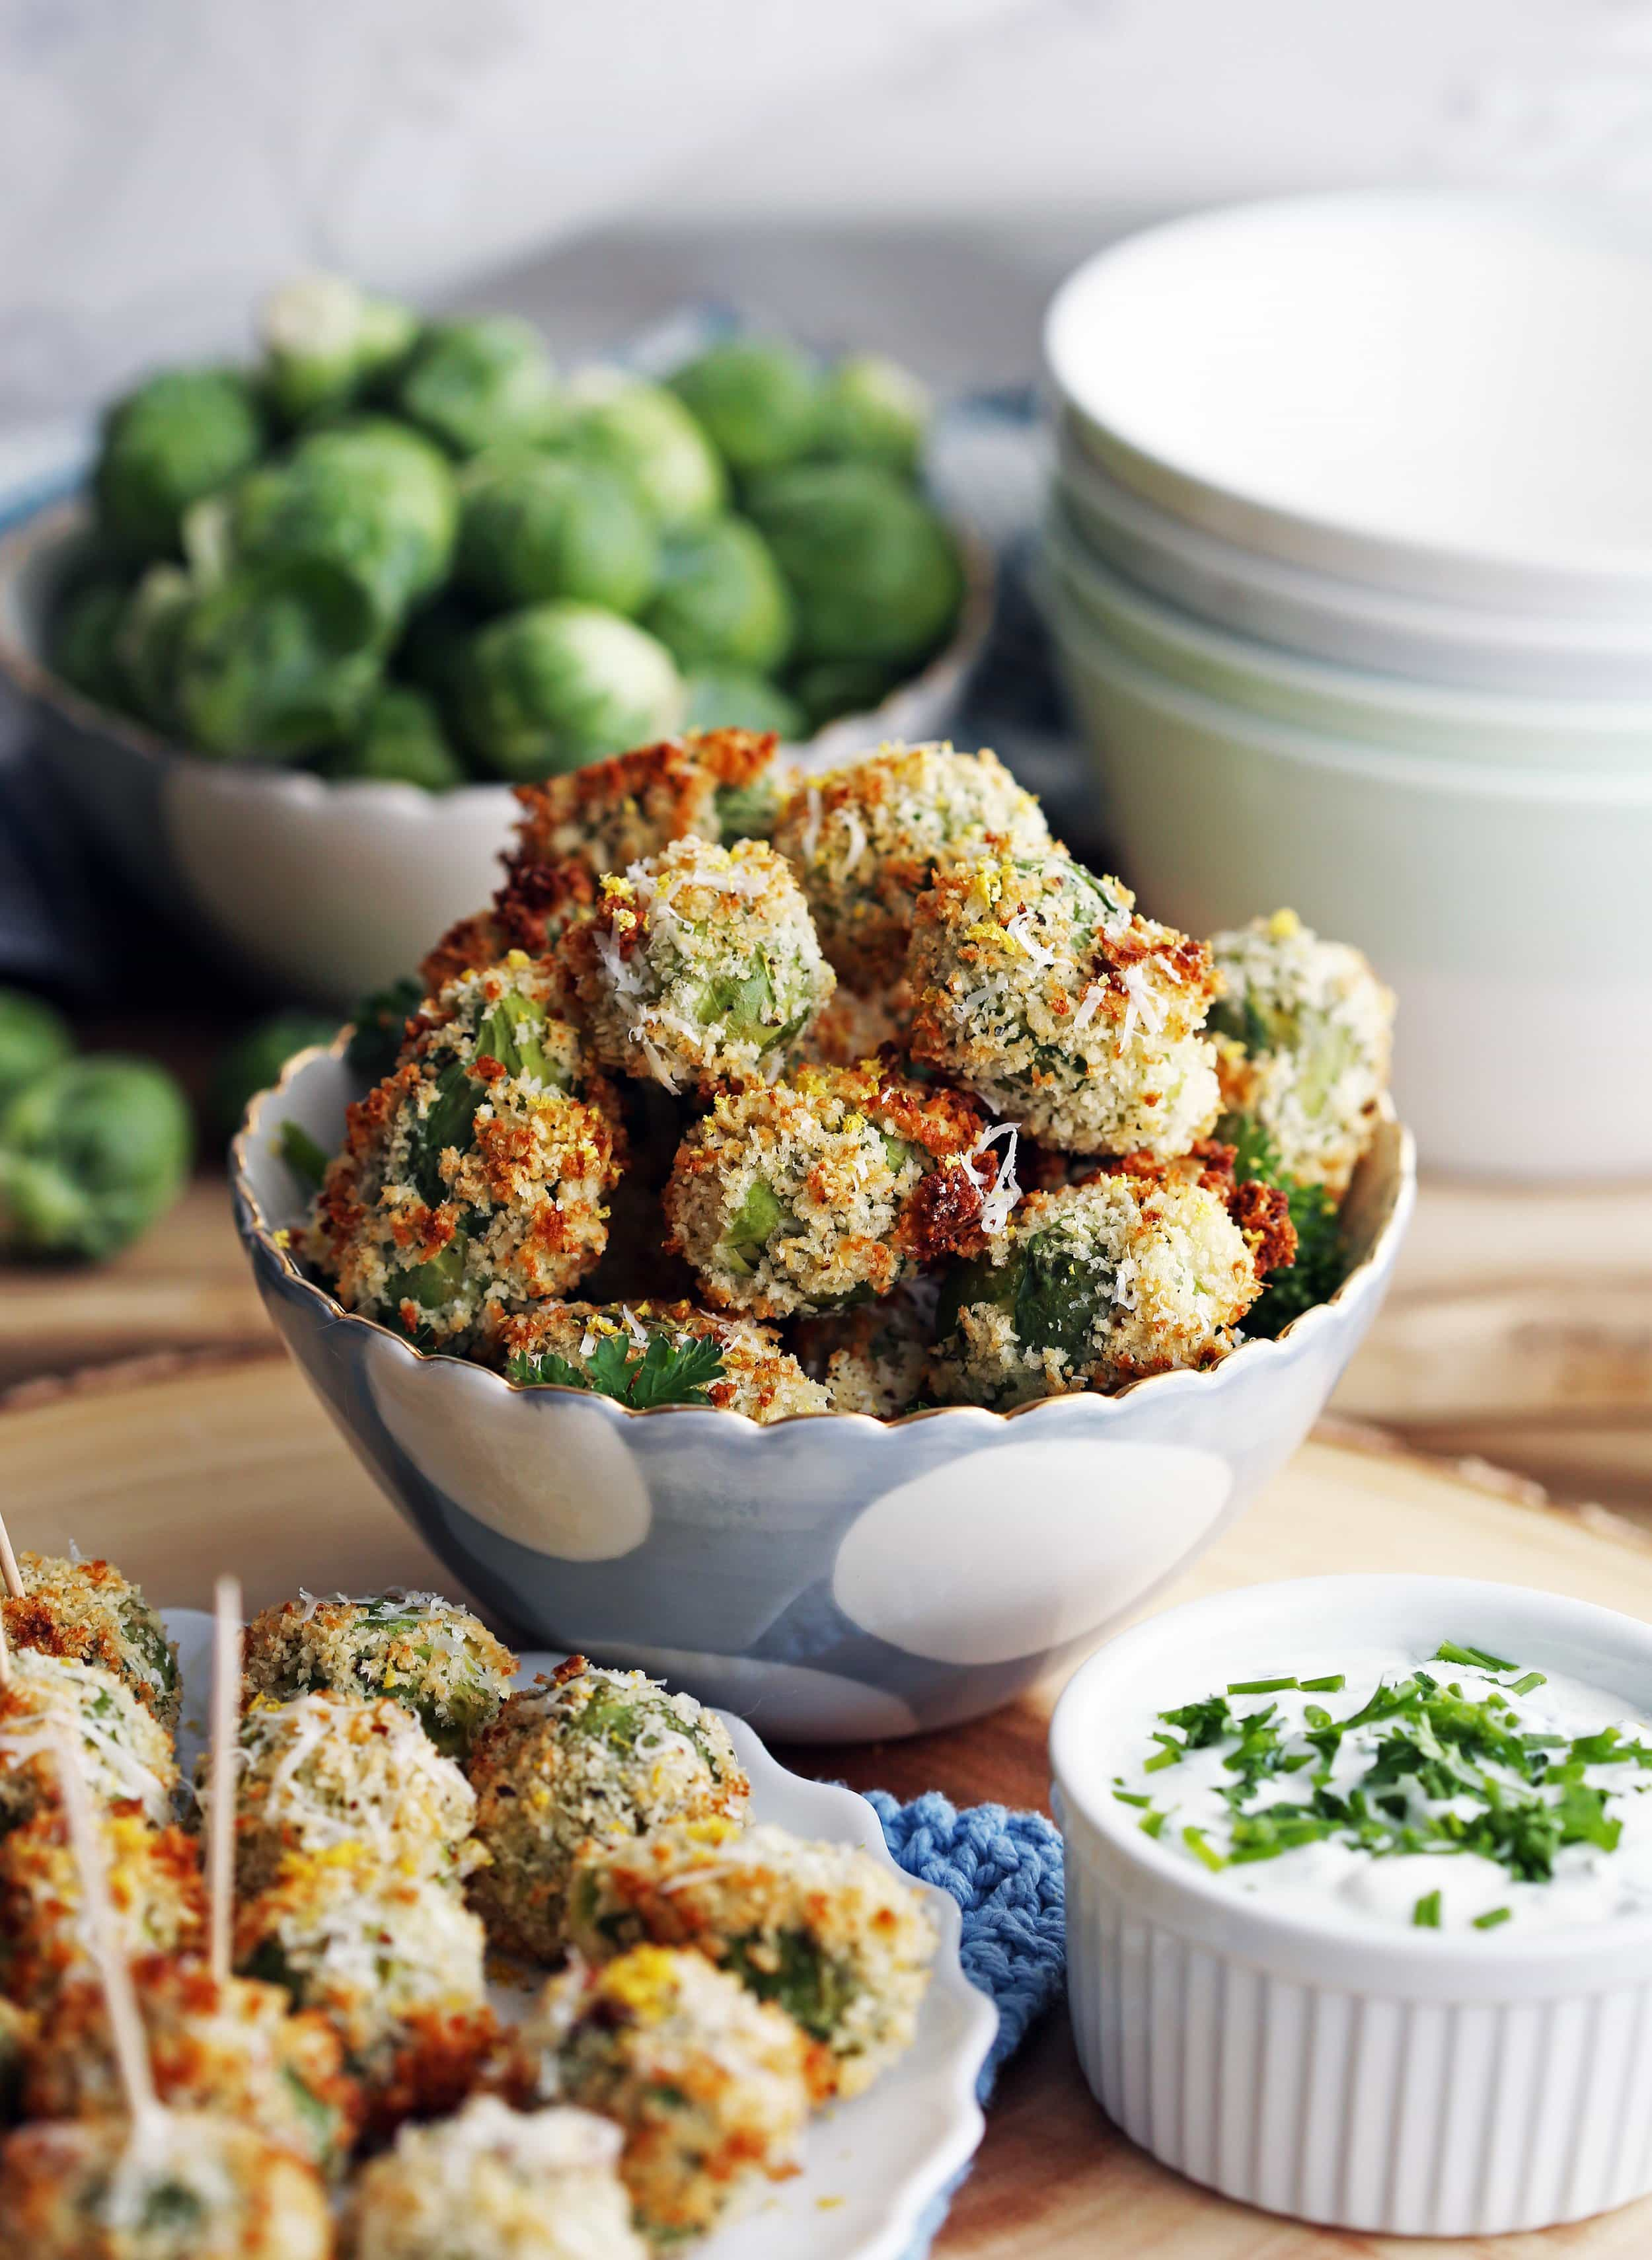 Parmesan Brussels Sprouts with Sour Cream Herb Dip